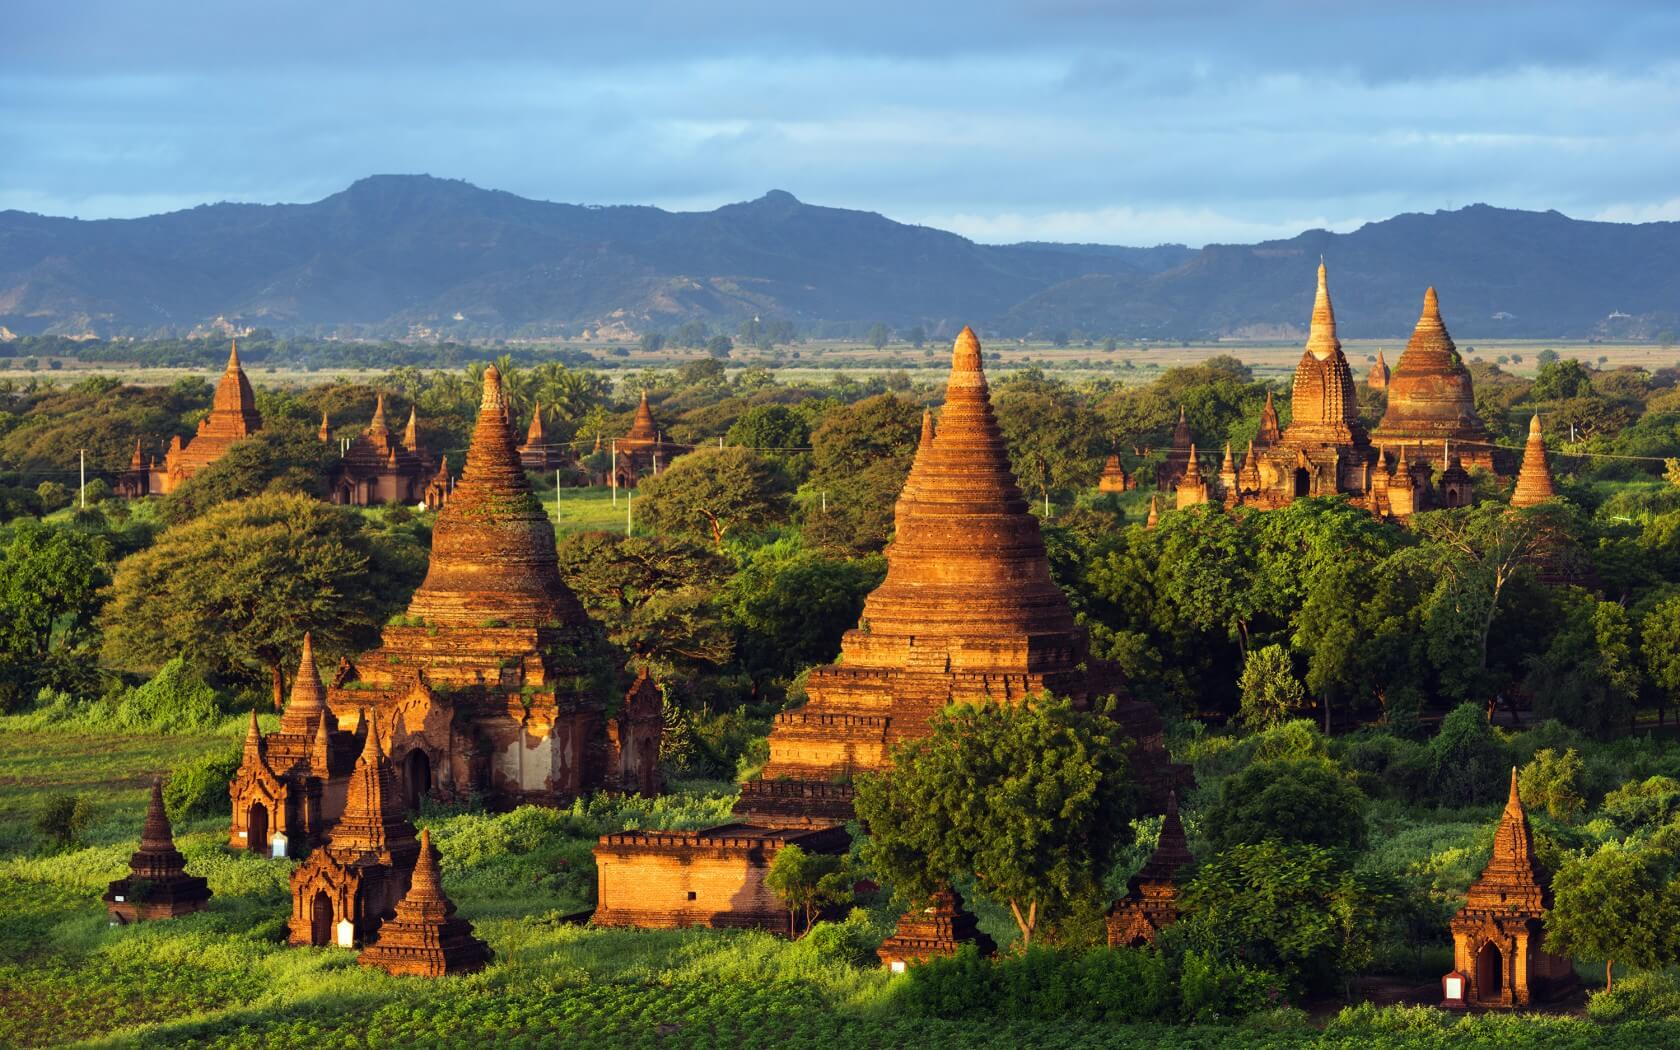 bagan sightseeing biking tour 2